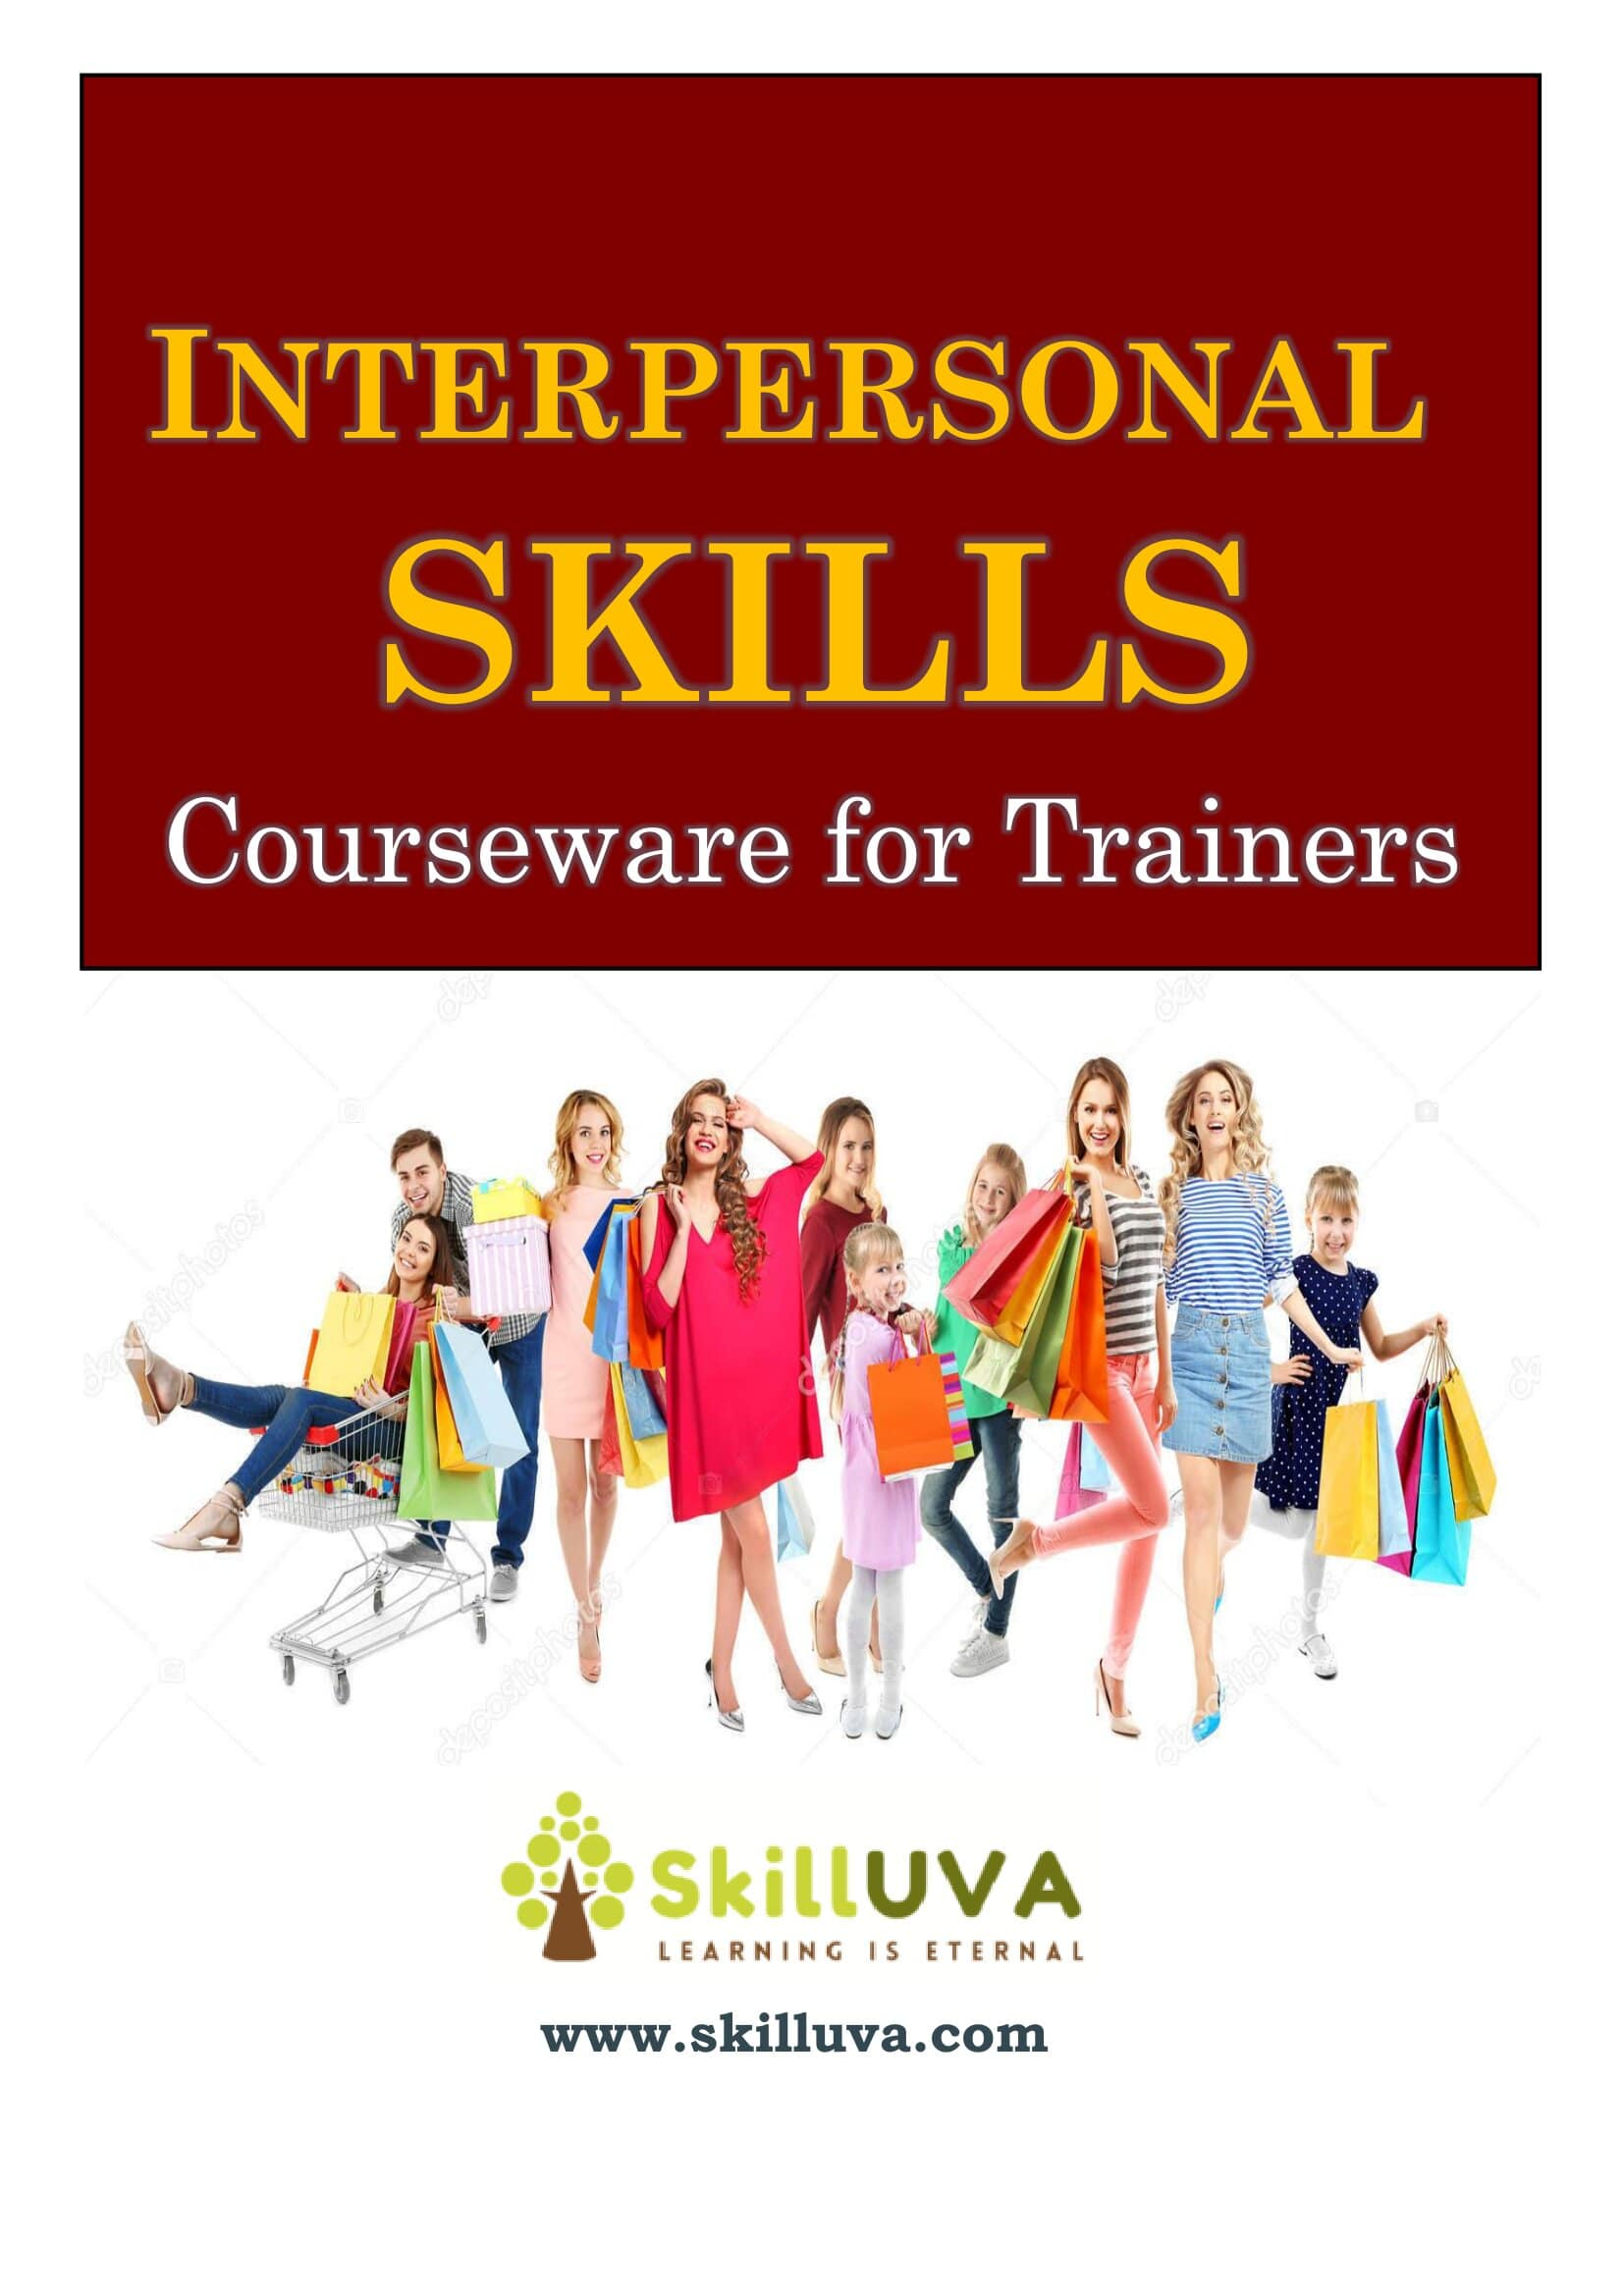 Interpersonal Skills first page